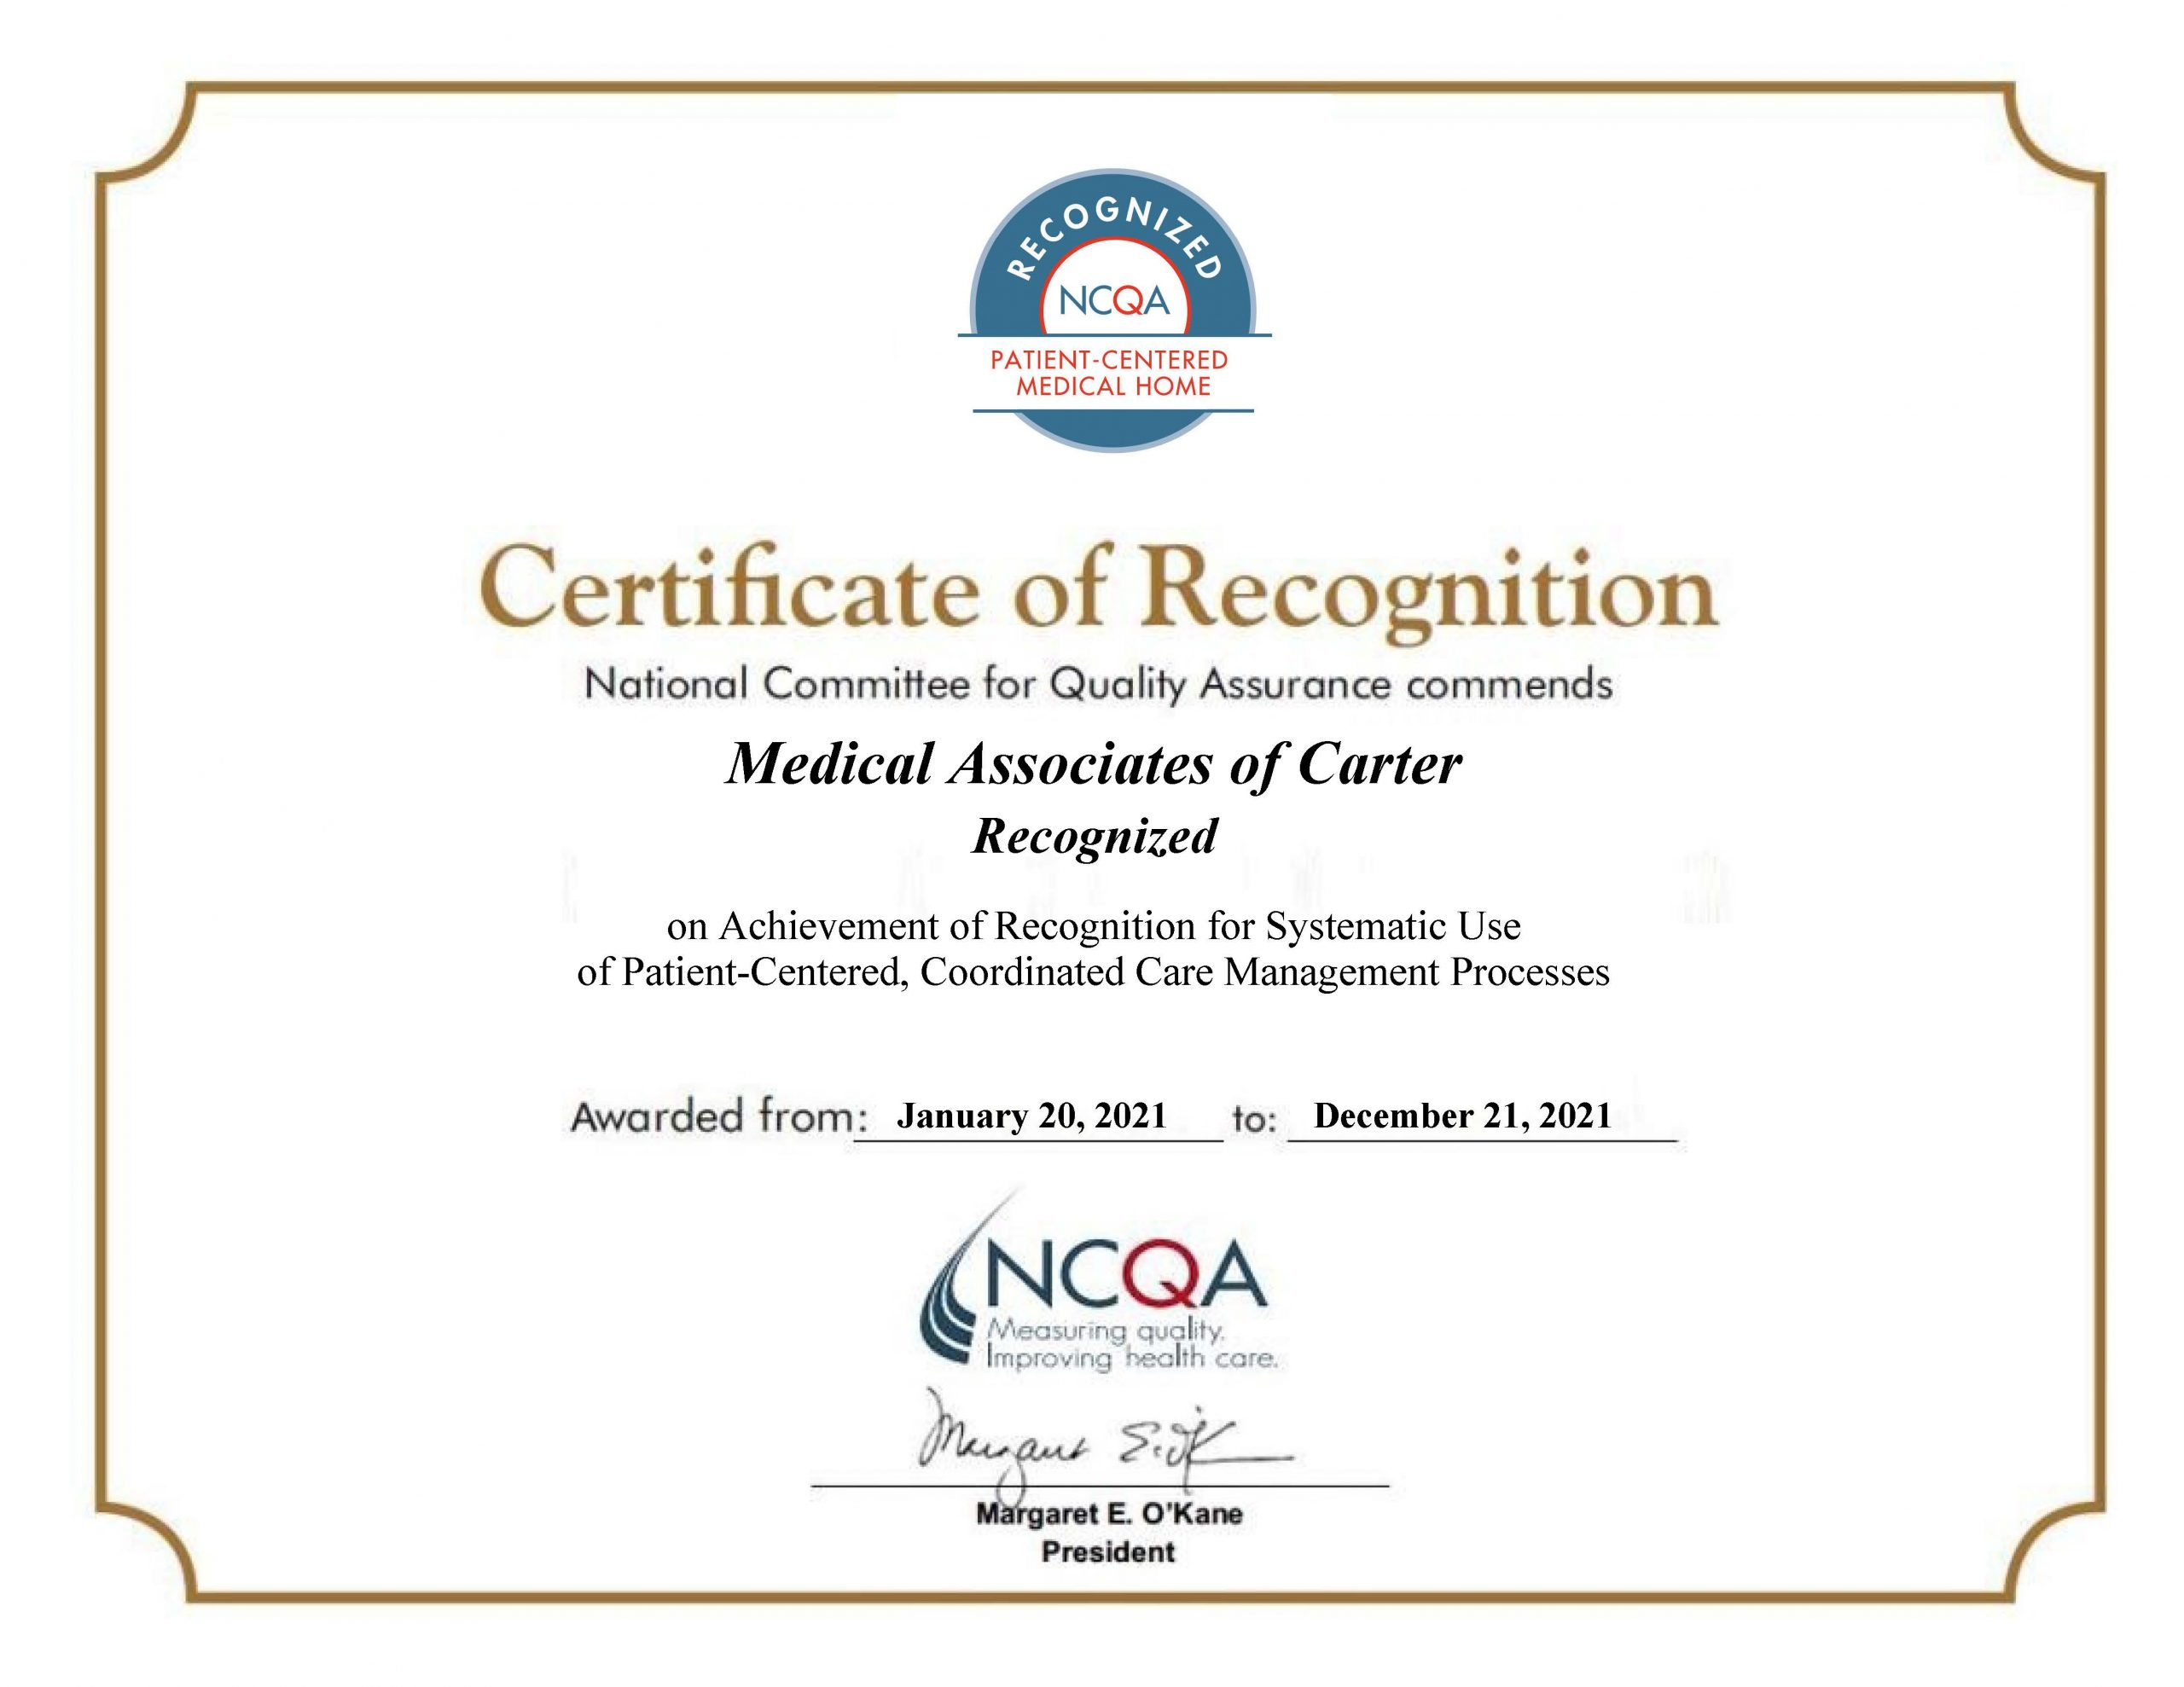 Medical Associates of Carter Recognized as PCMH